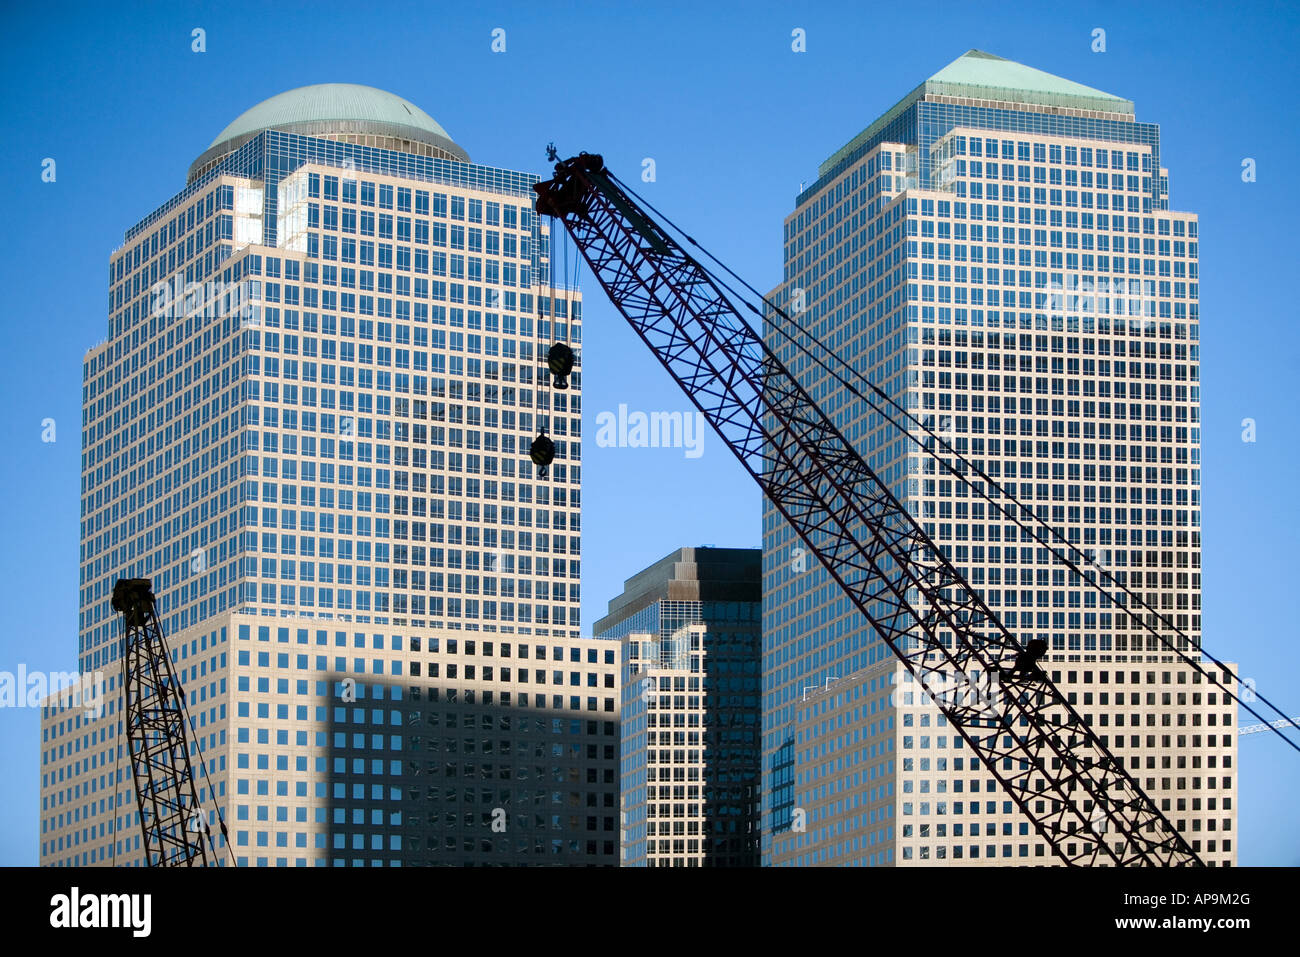 Cranes and world financial center - Stock Image